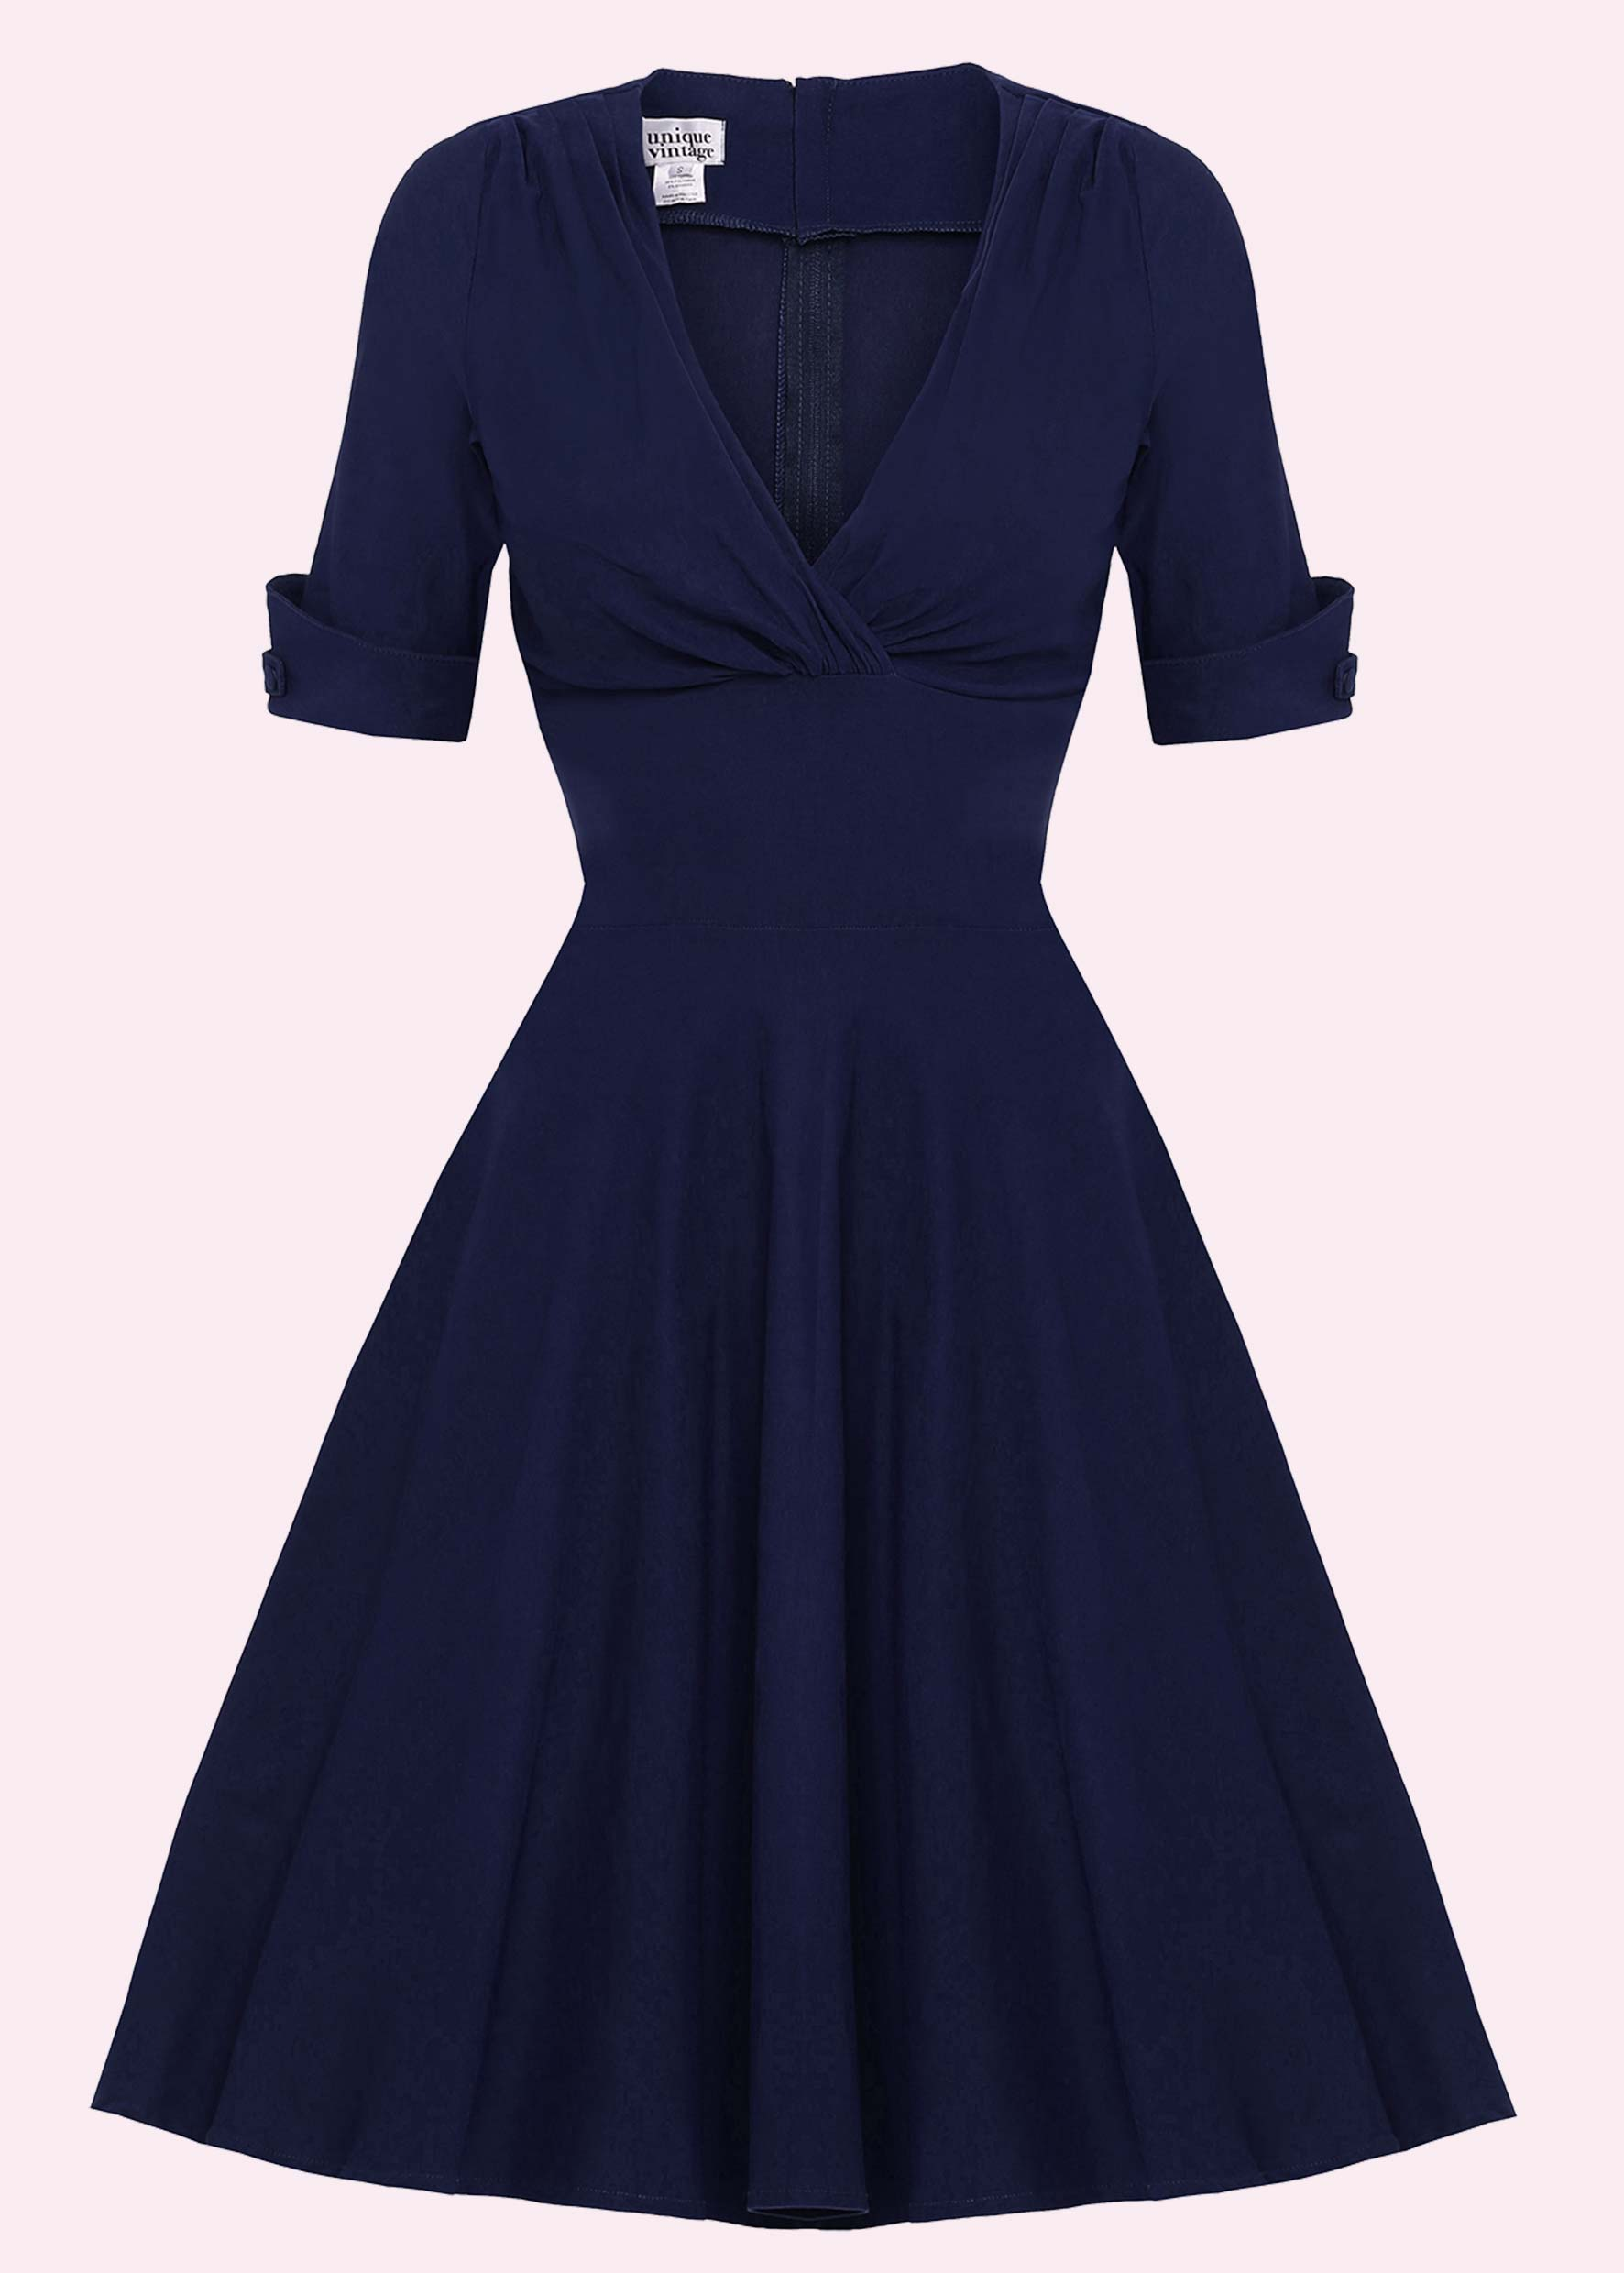 Mad Men 50s dress in navy blue from Stop Staring!